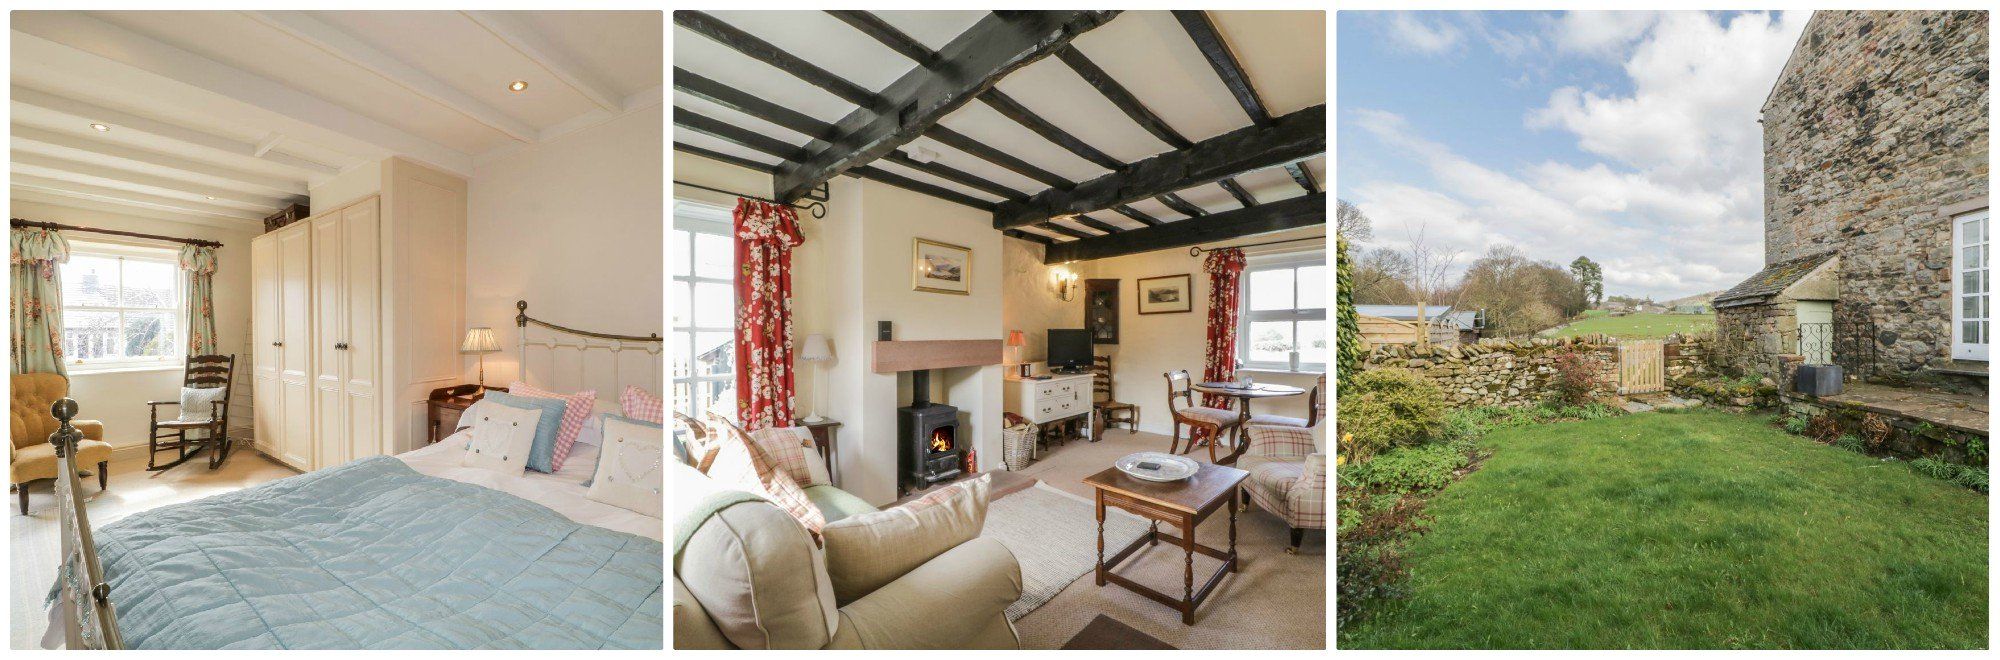 Sleeps 2 - holiday cottage in the centre of Pooley Bridge at Ullswater